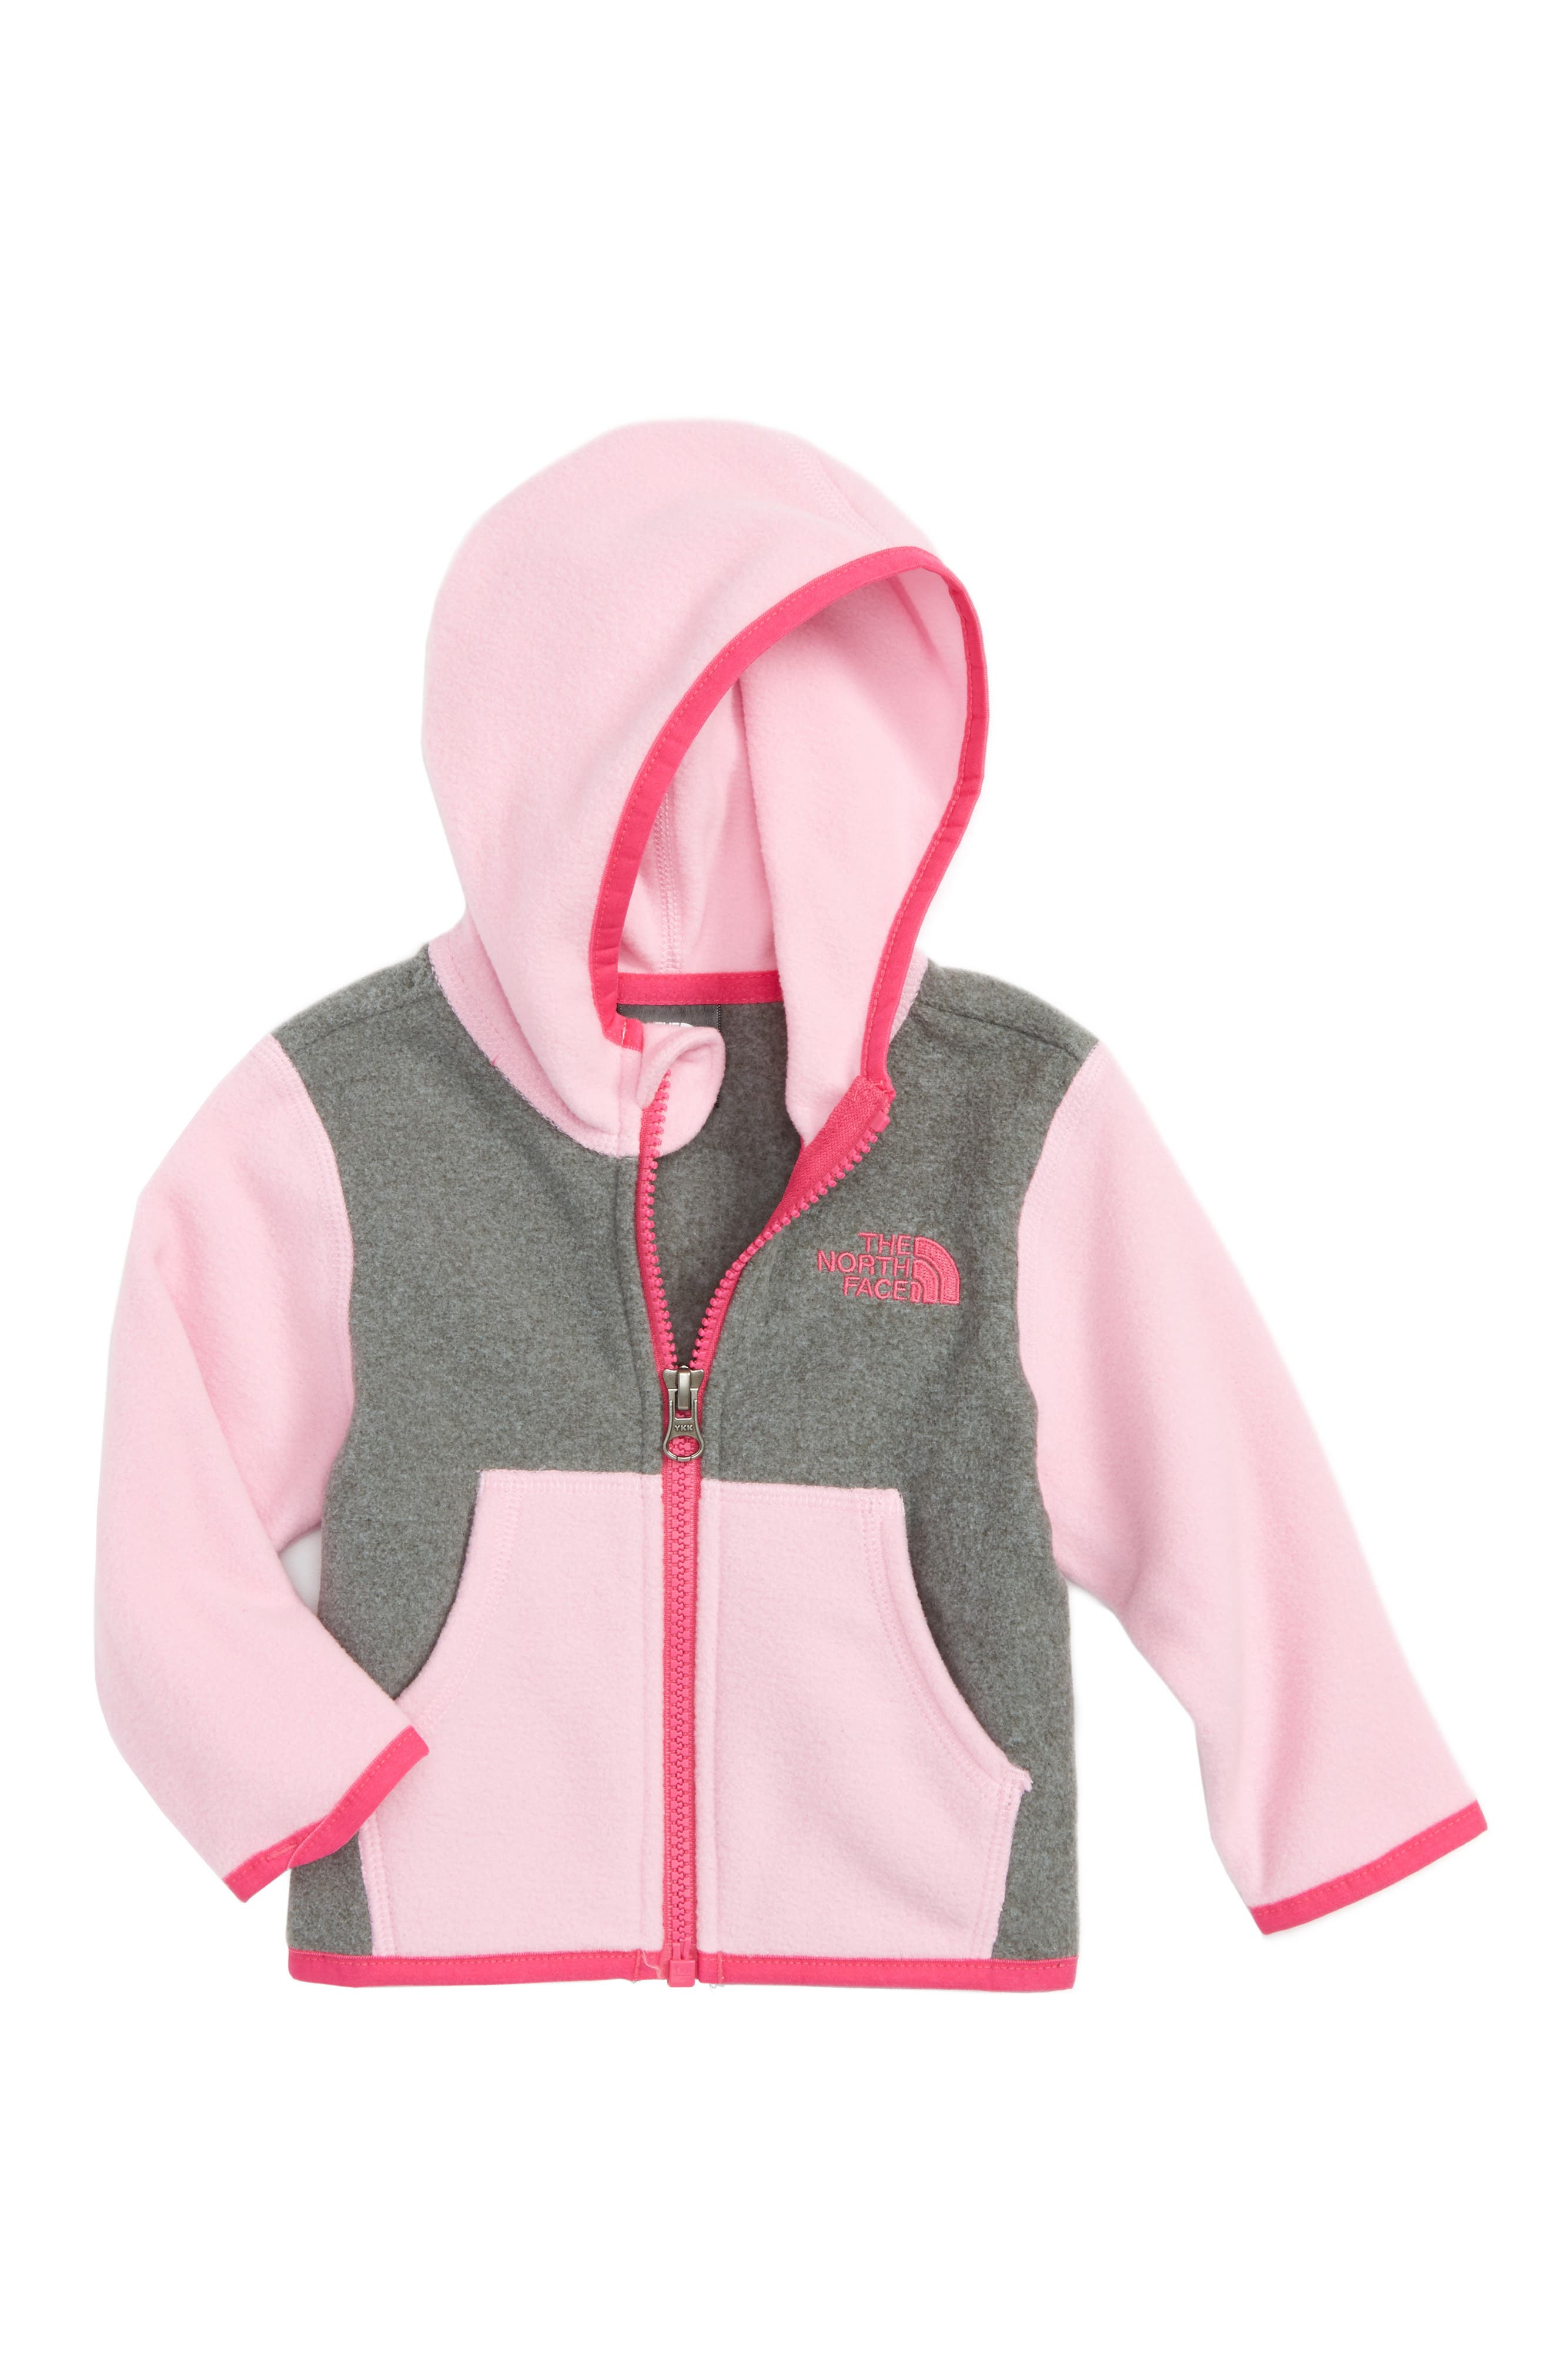 Alternate Image 1 Selected - The North Face 'Glacier' Zip Hoodie (Baby Girls)